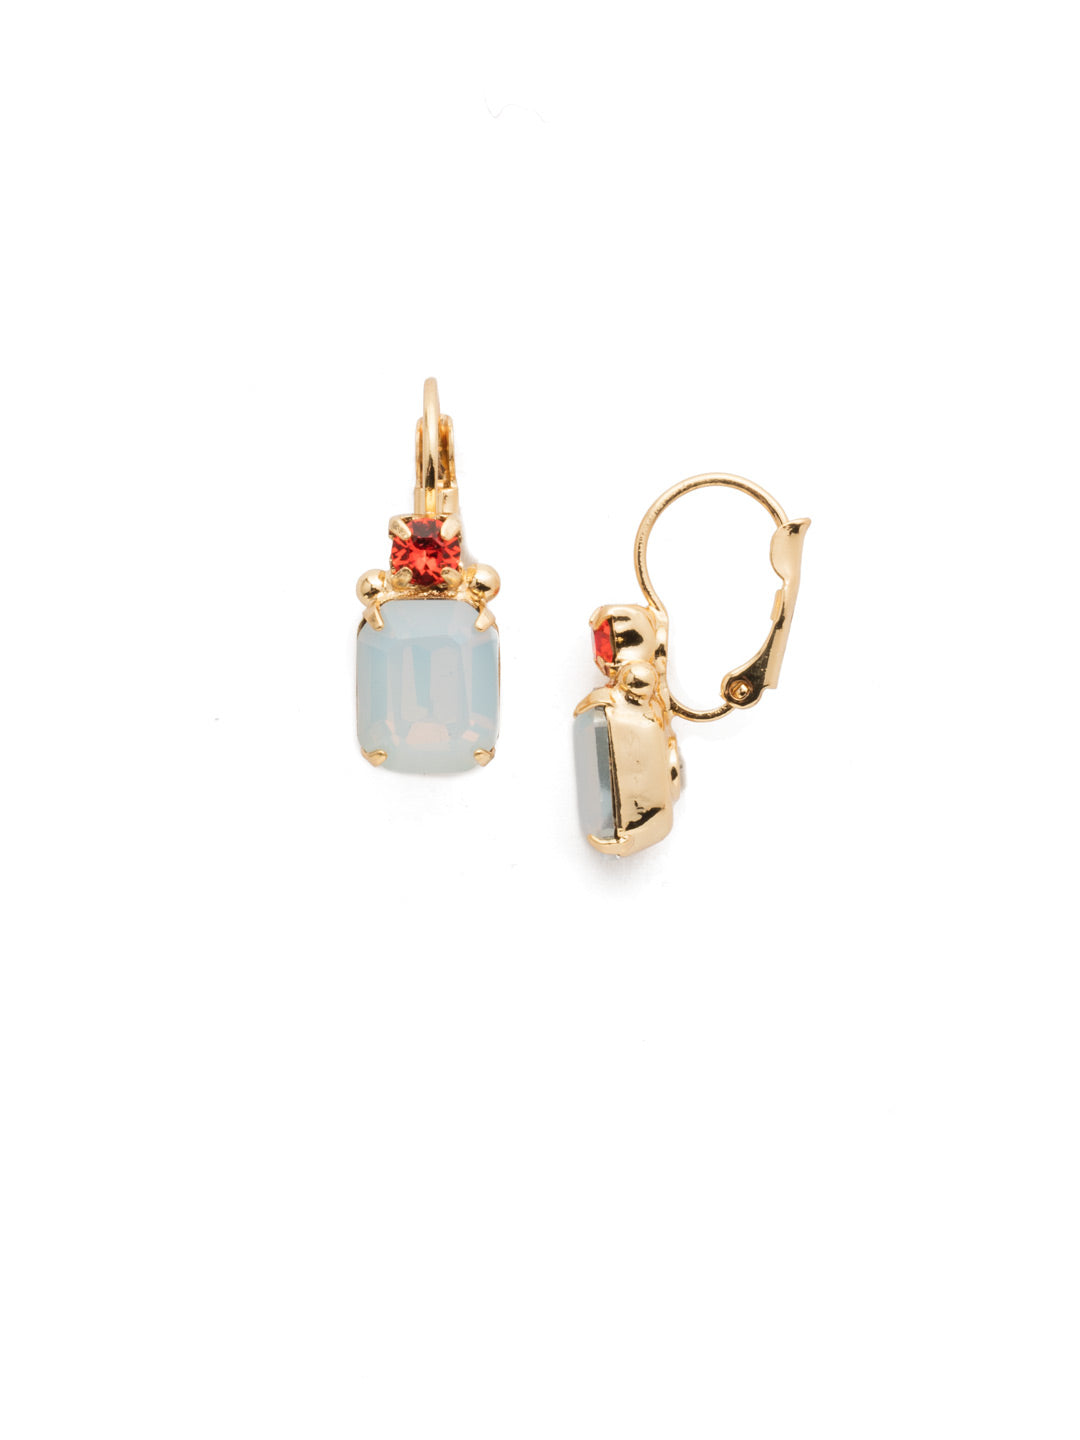 Zelmira Stud Earrings - EEA7BGOCH